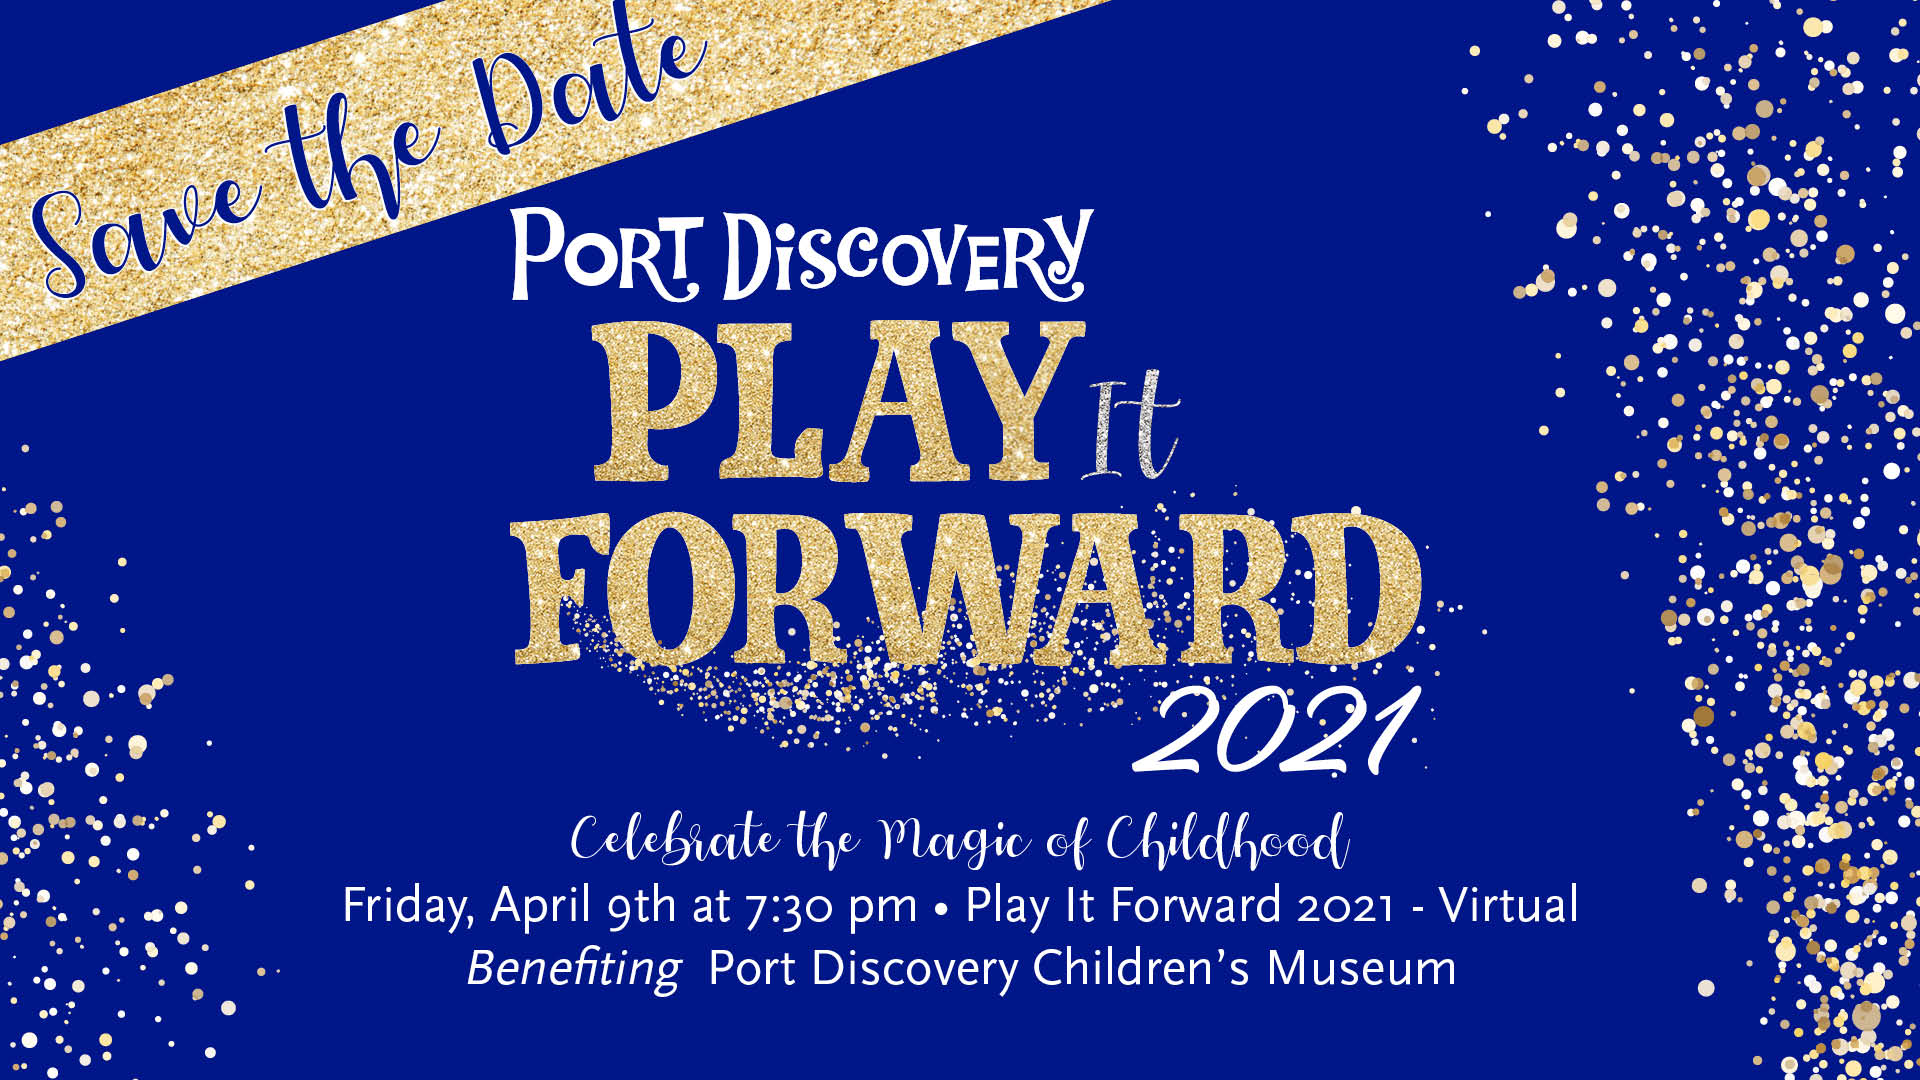 Save the Date for Play it Forward 2021. Celebrate the magic of childhood! Friday, April 9th at 7:30 PM. Play it Forward 2021. Virtual. Benefiting Port Discovery Children's Museum.